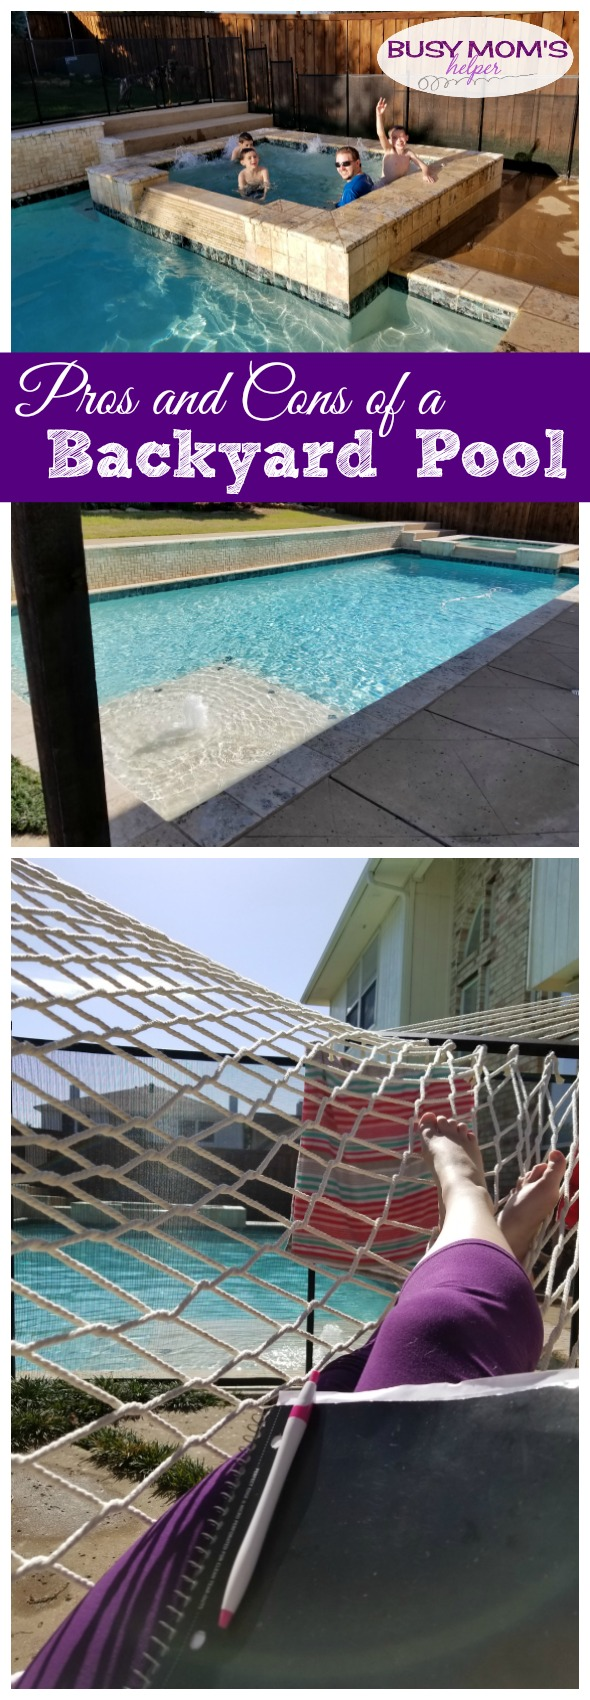 Pros And Cons Of A Backyard Pool Busy Moms Helper